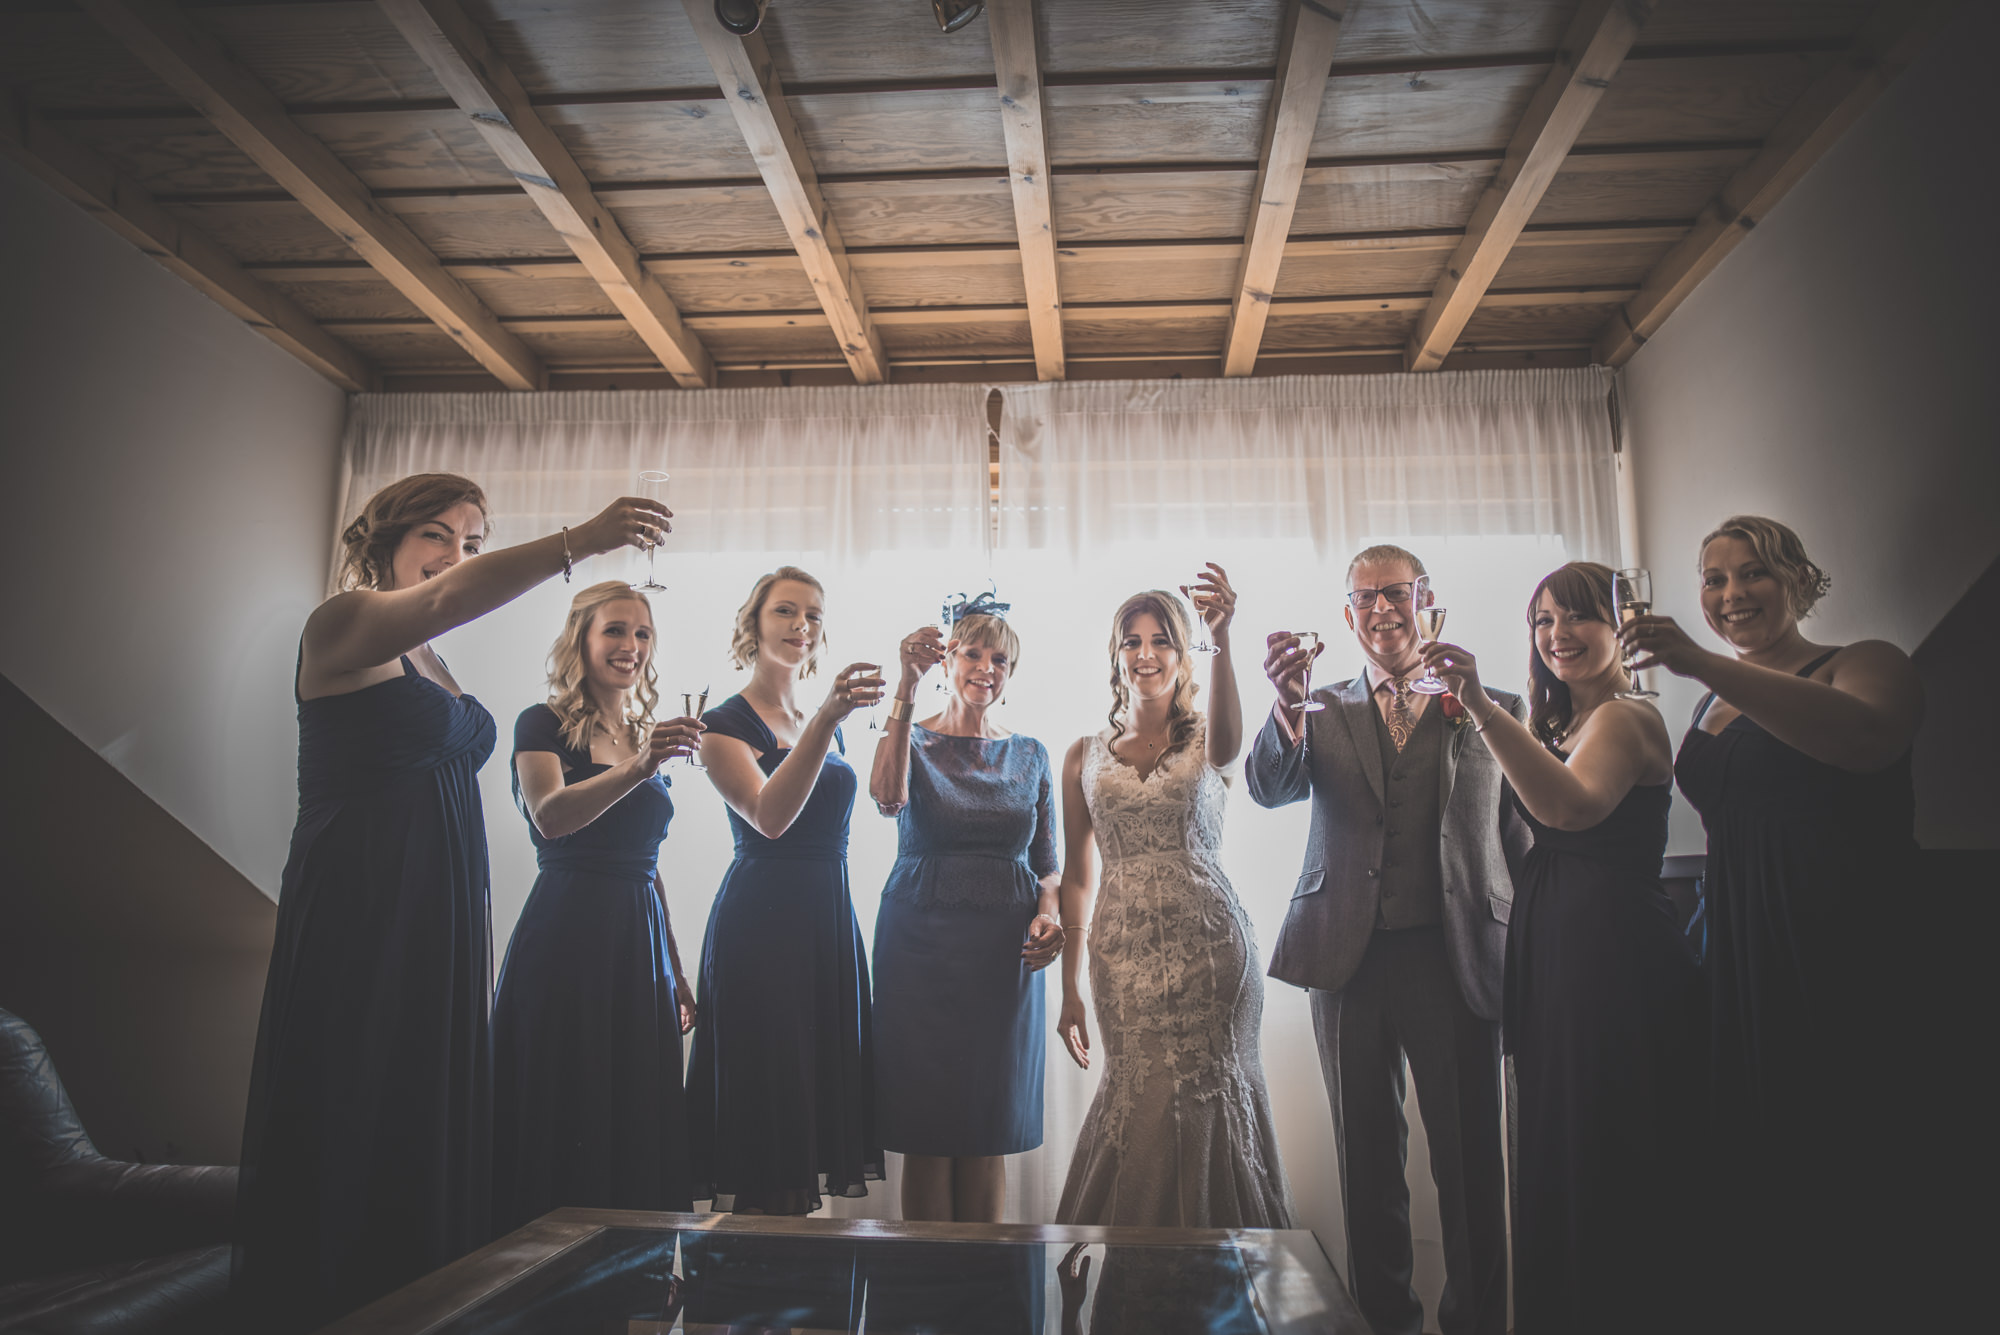 Amy-and-Andres-destination-wedding-in-Potes-Spain-Manu-Mendoza-Wedding-Photography-226.jpg